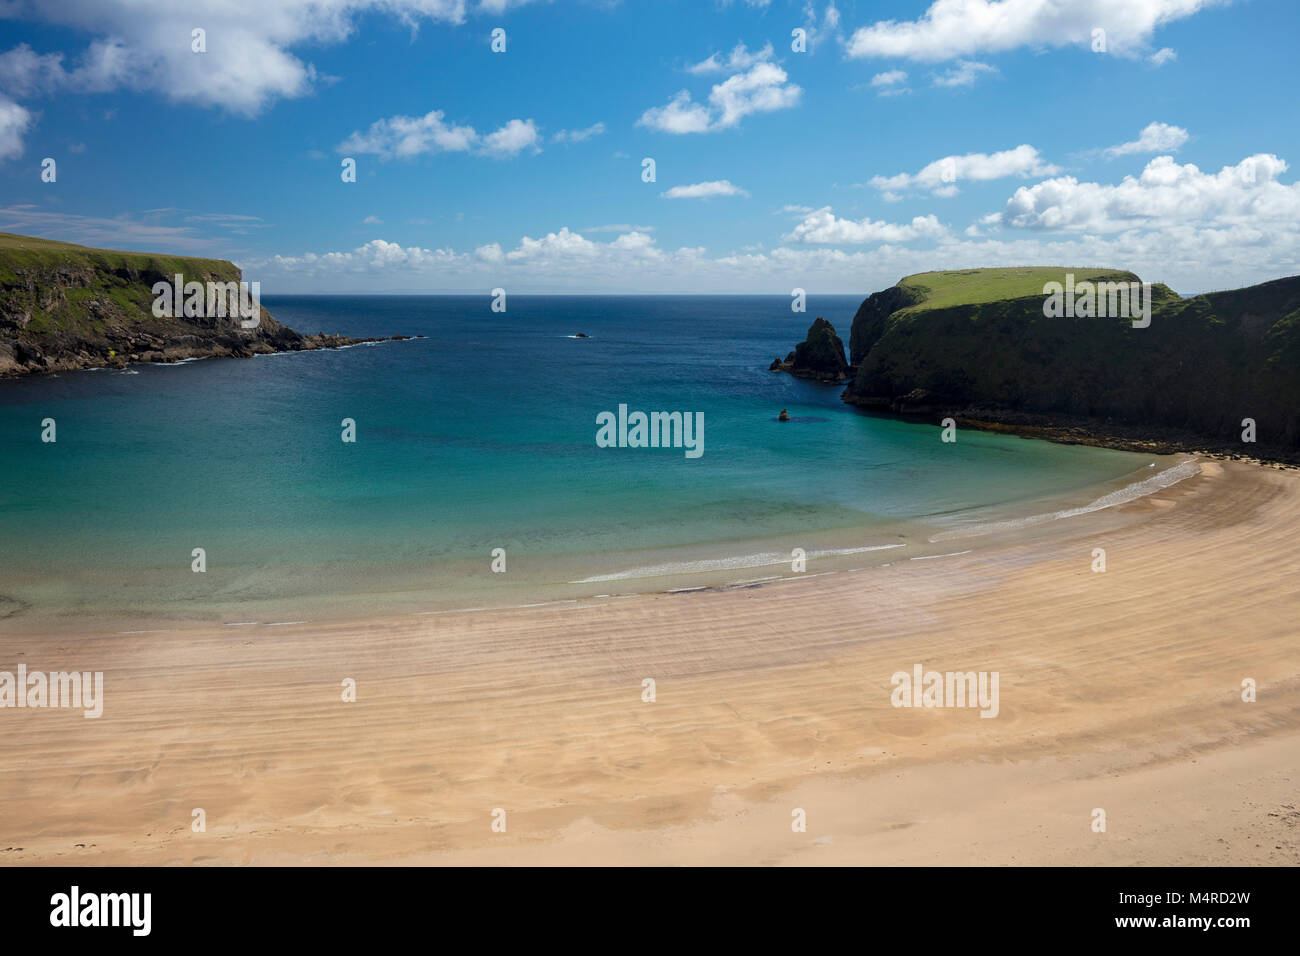 The beach of Trabane, or Silver Strand, in Malin Beg, County Donegal, Ireland. - Stock Image